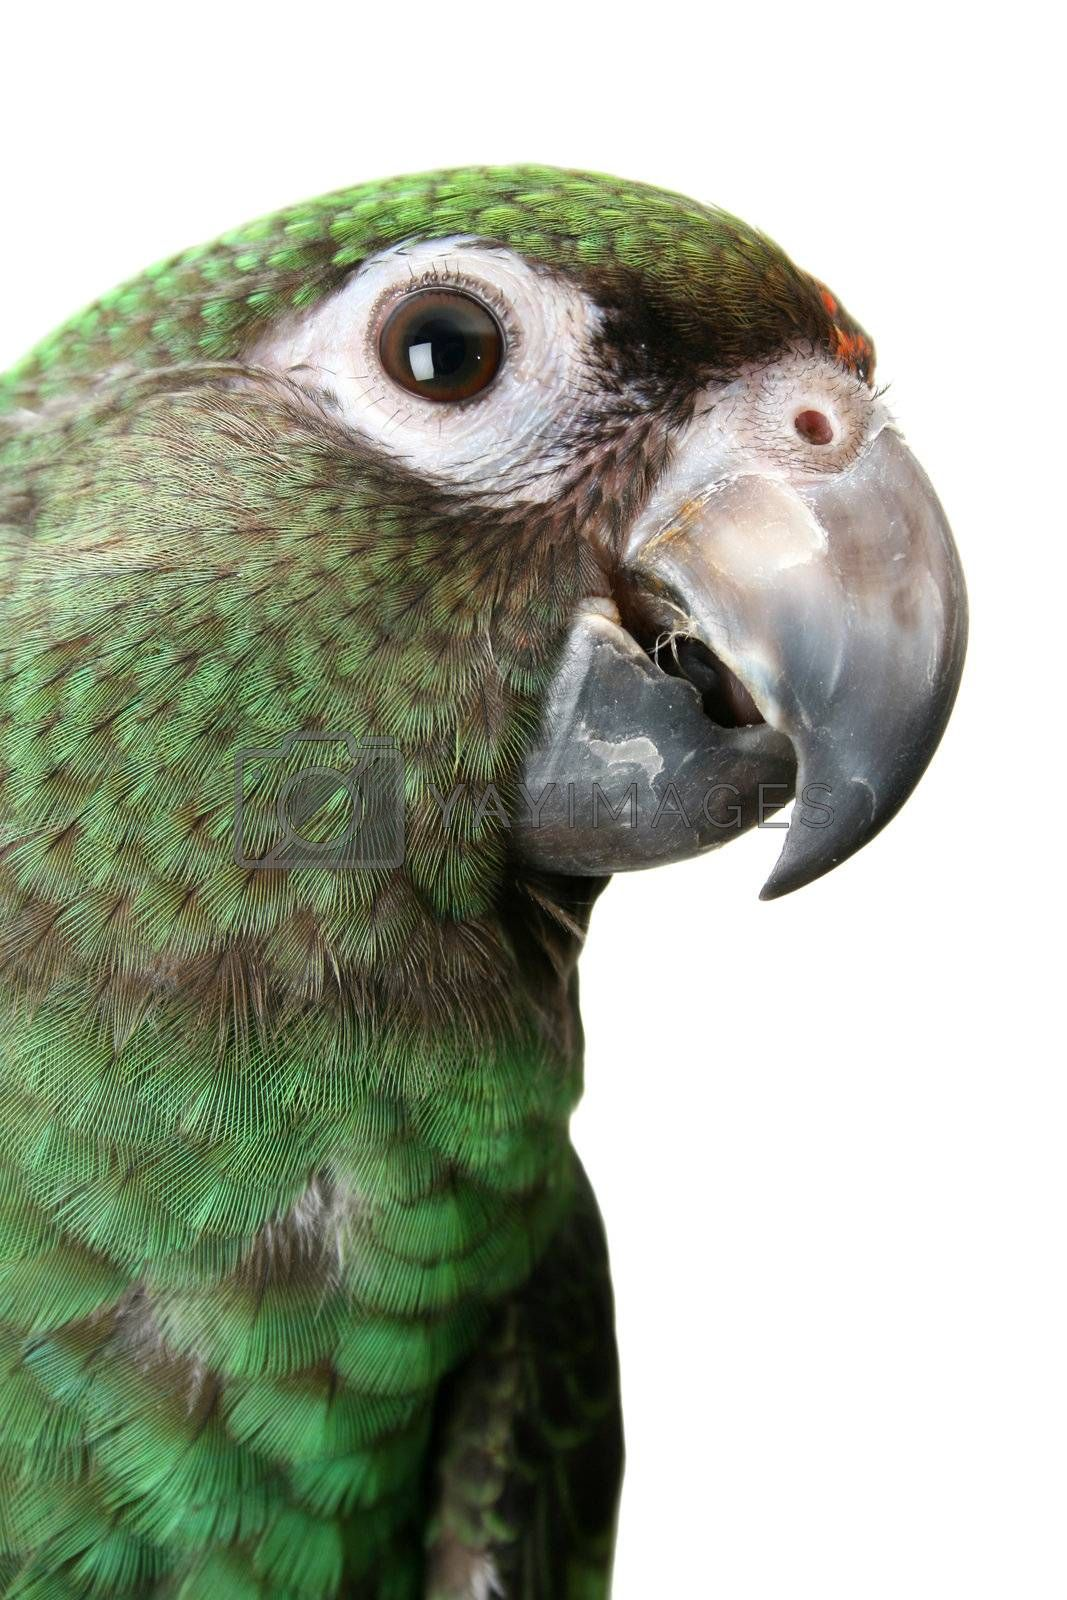 6 month old Jardine parrot on a white background